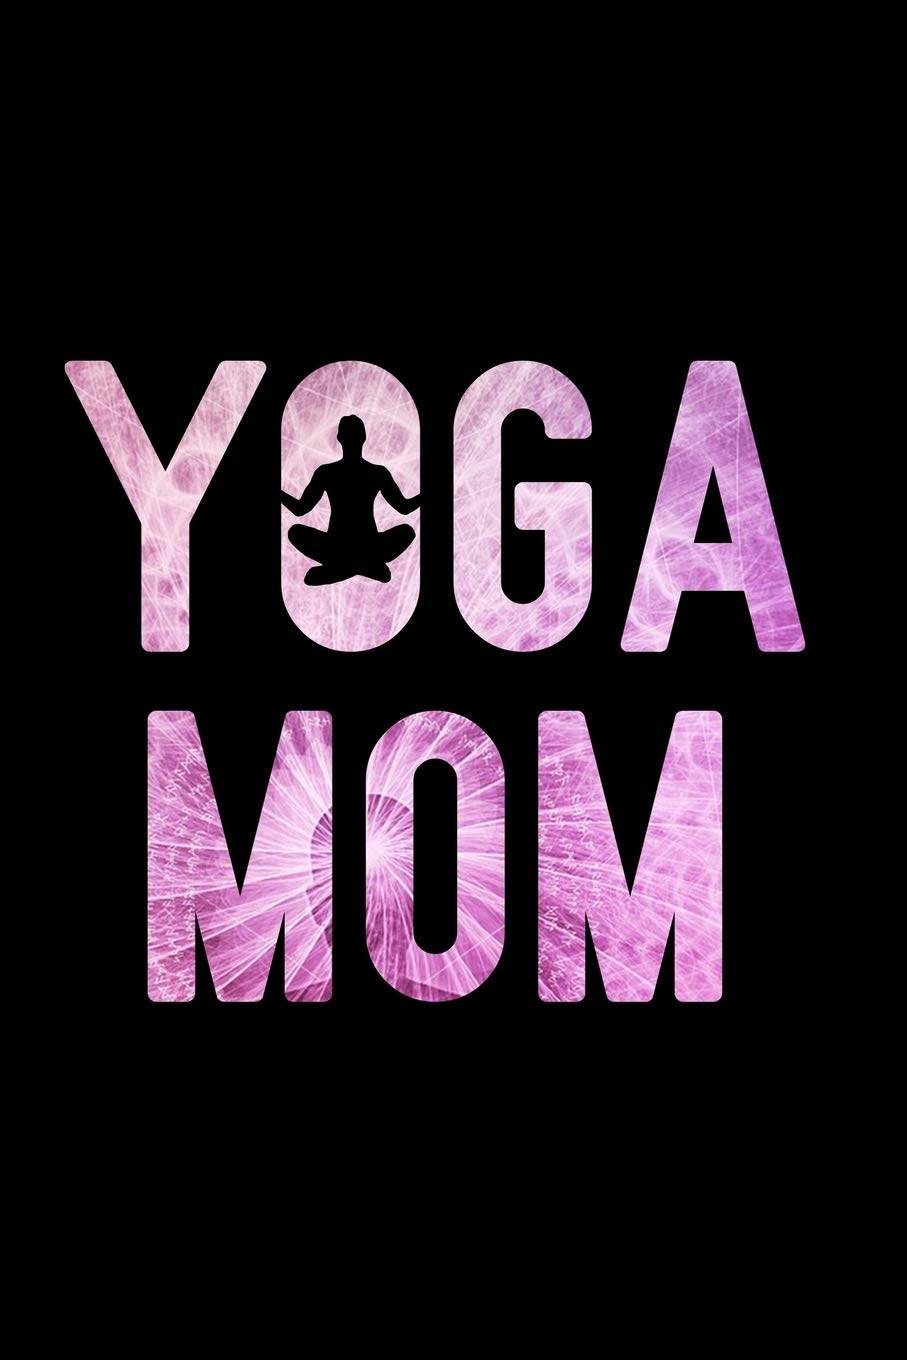 Yoga Mom Notebook To Write In For Mother S Day Mother S Day Gifts Yoga Yoga Journal Yoga Notebook Yoga Gifts Nova Booki 9781093765441 Amazon Com Books